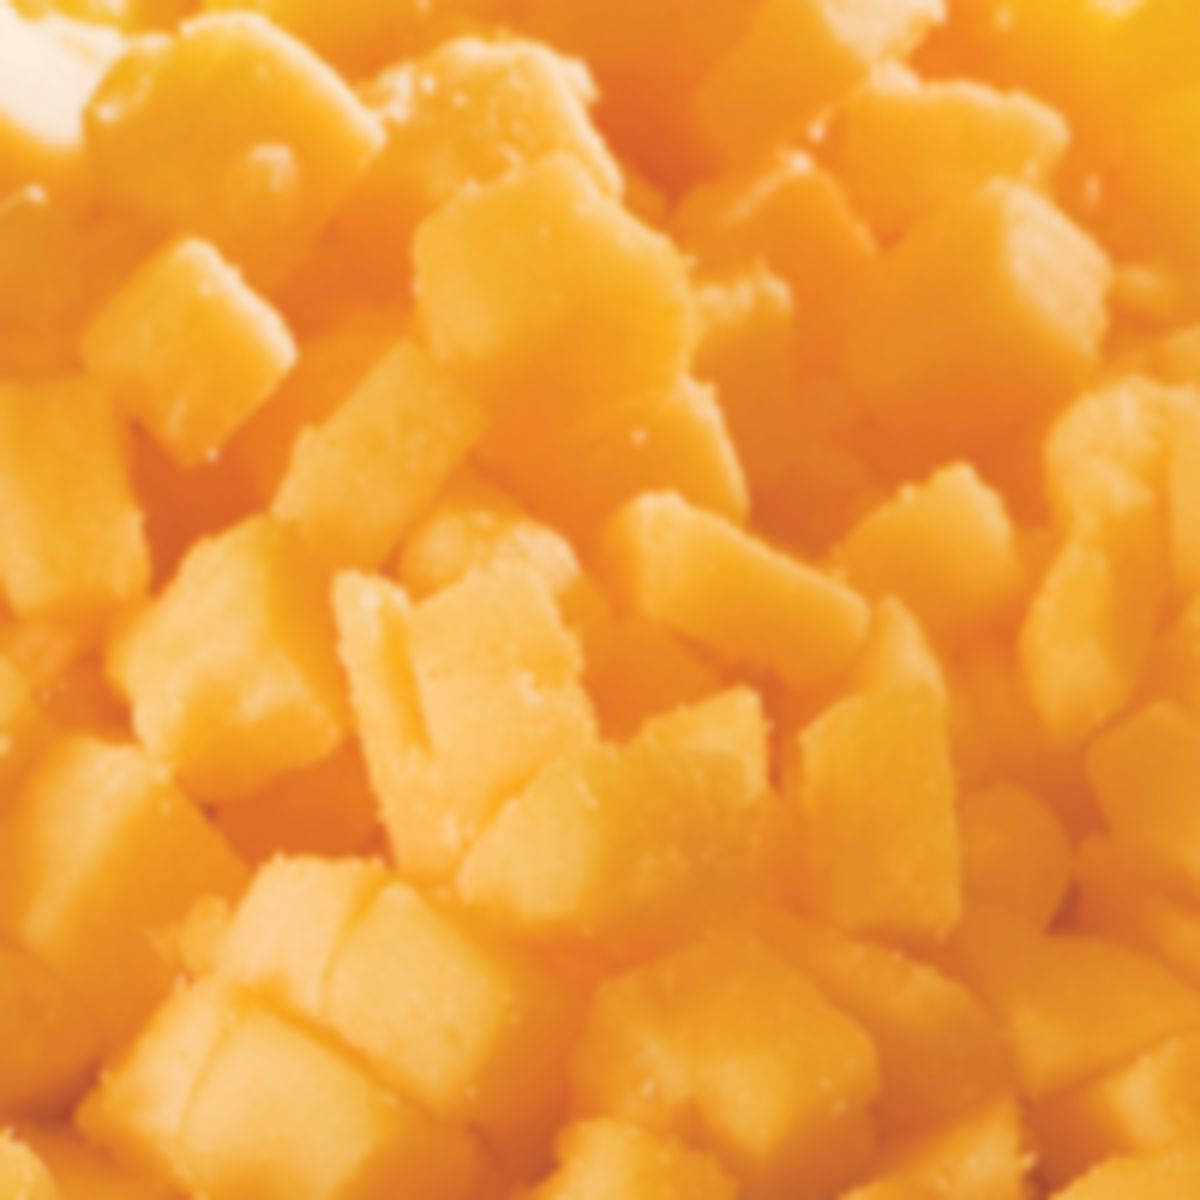 Cabela's High-Temperature Cheese – 2-1/2 lbs.